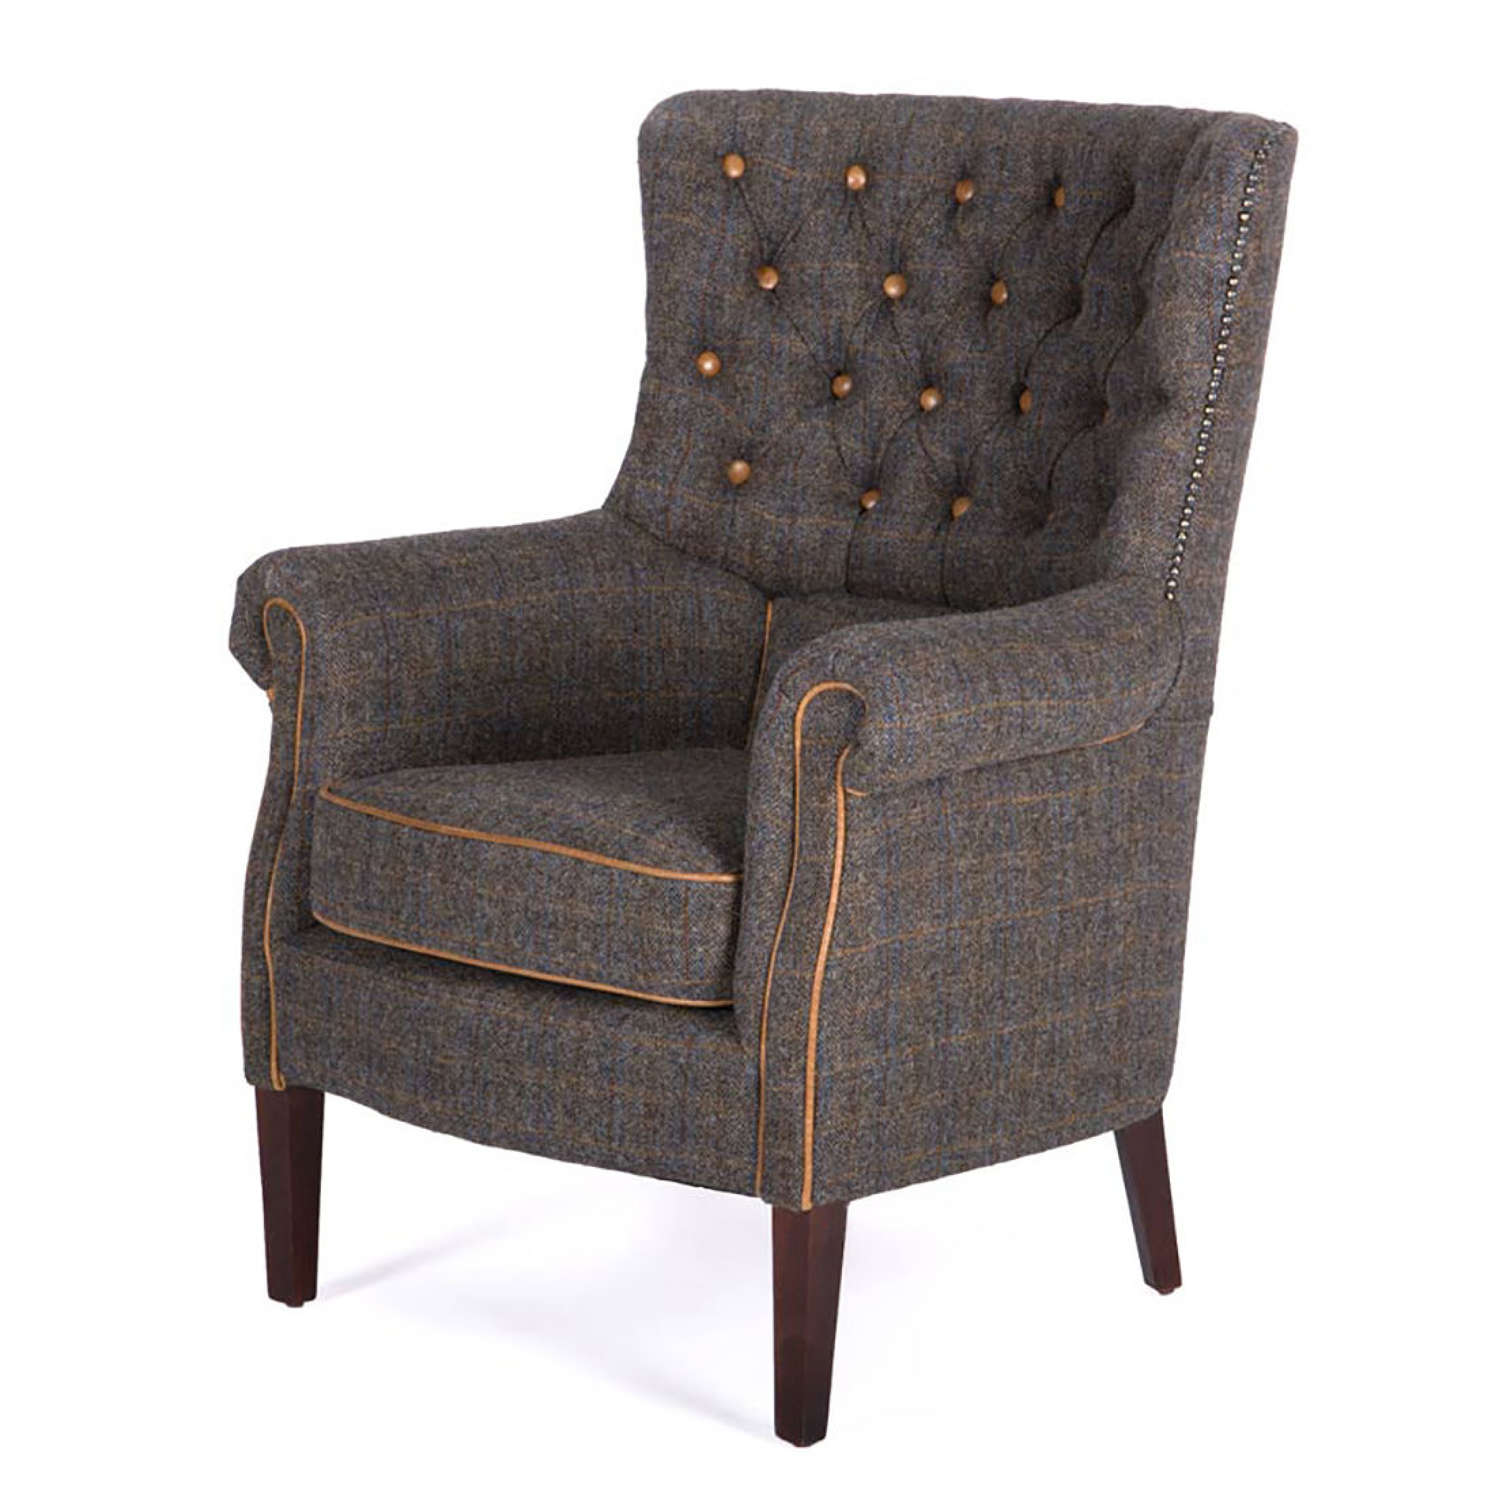 Holker Armchair in Uist Night Harris Tweed and Leather